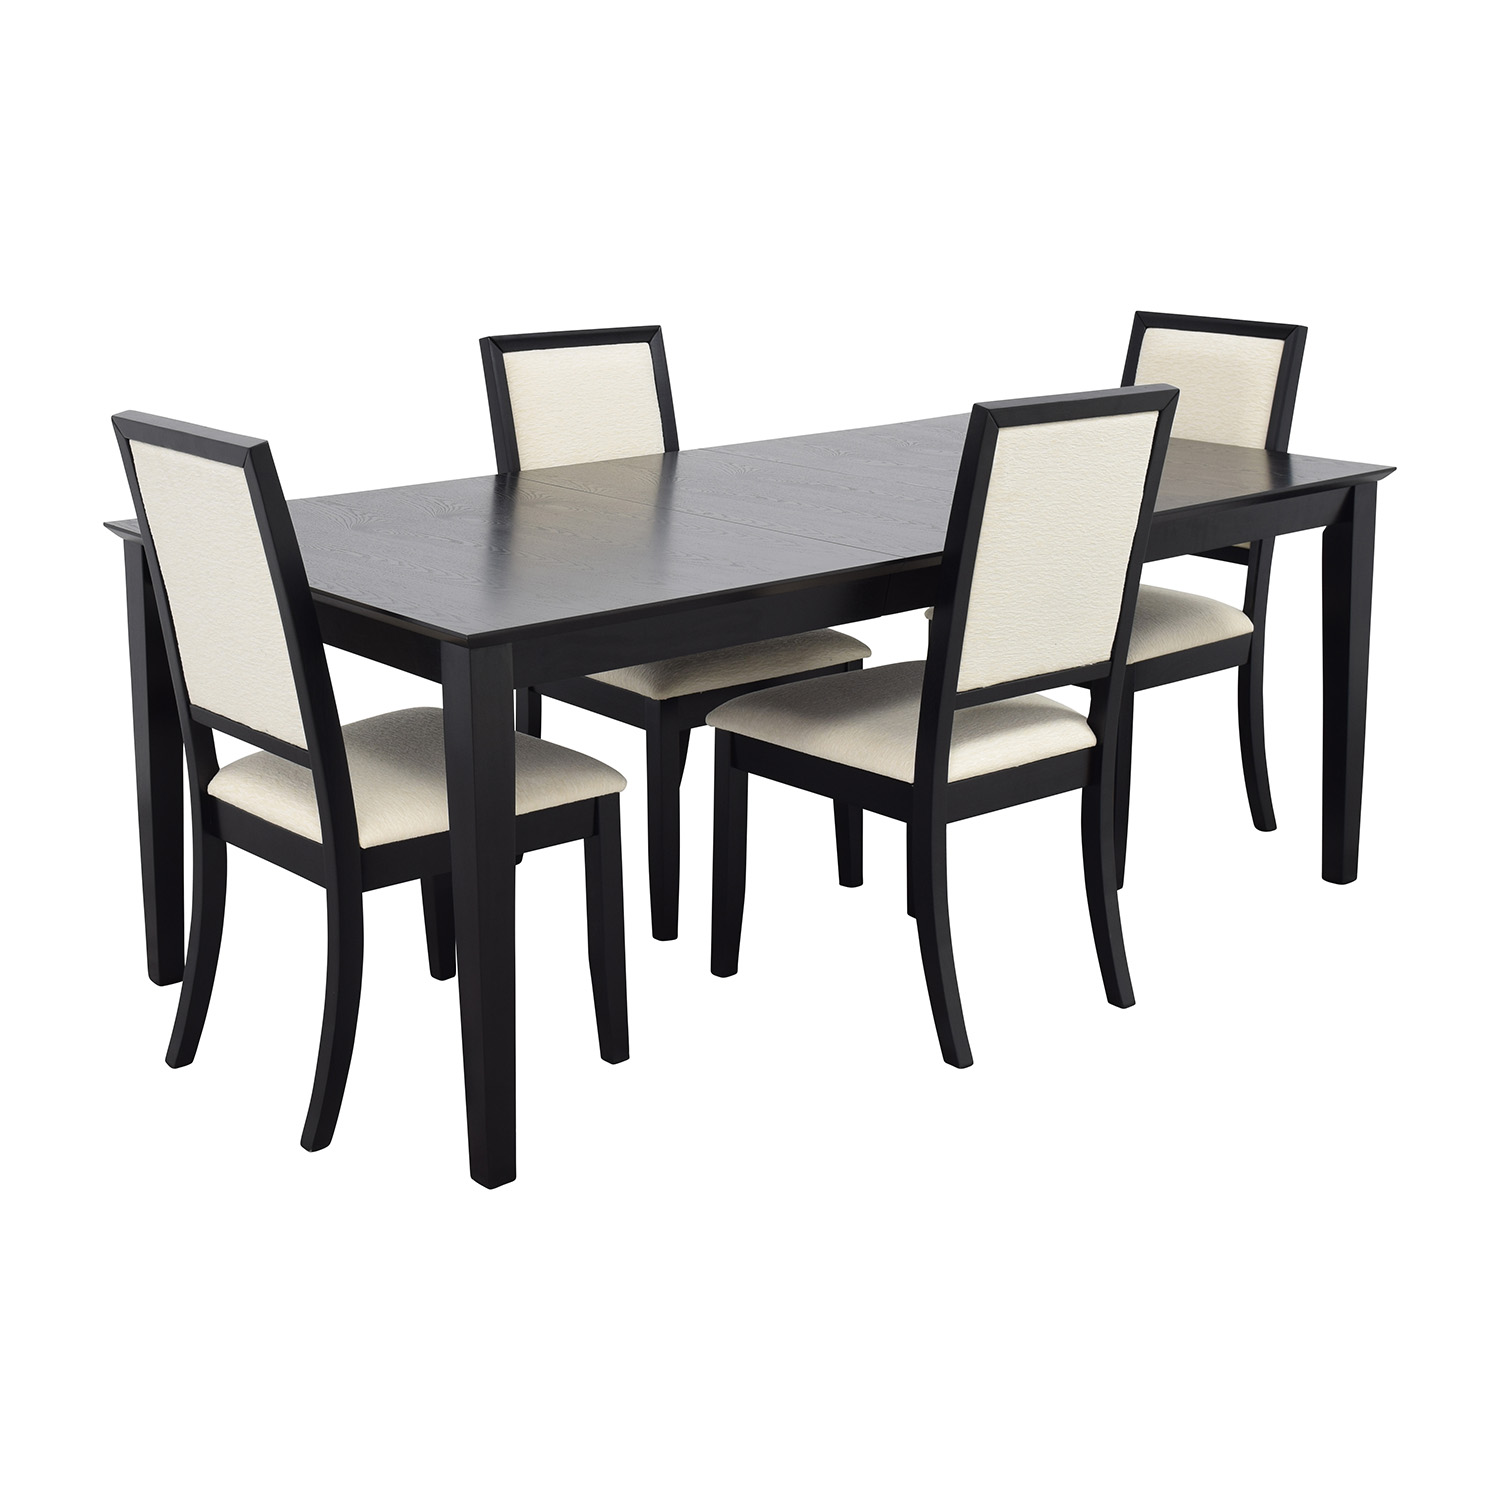 Dining Table Sets Black And White Dining Table 4 Chairs: Harlem Furniture Harlem Furniture Black Dining